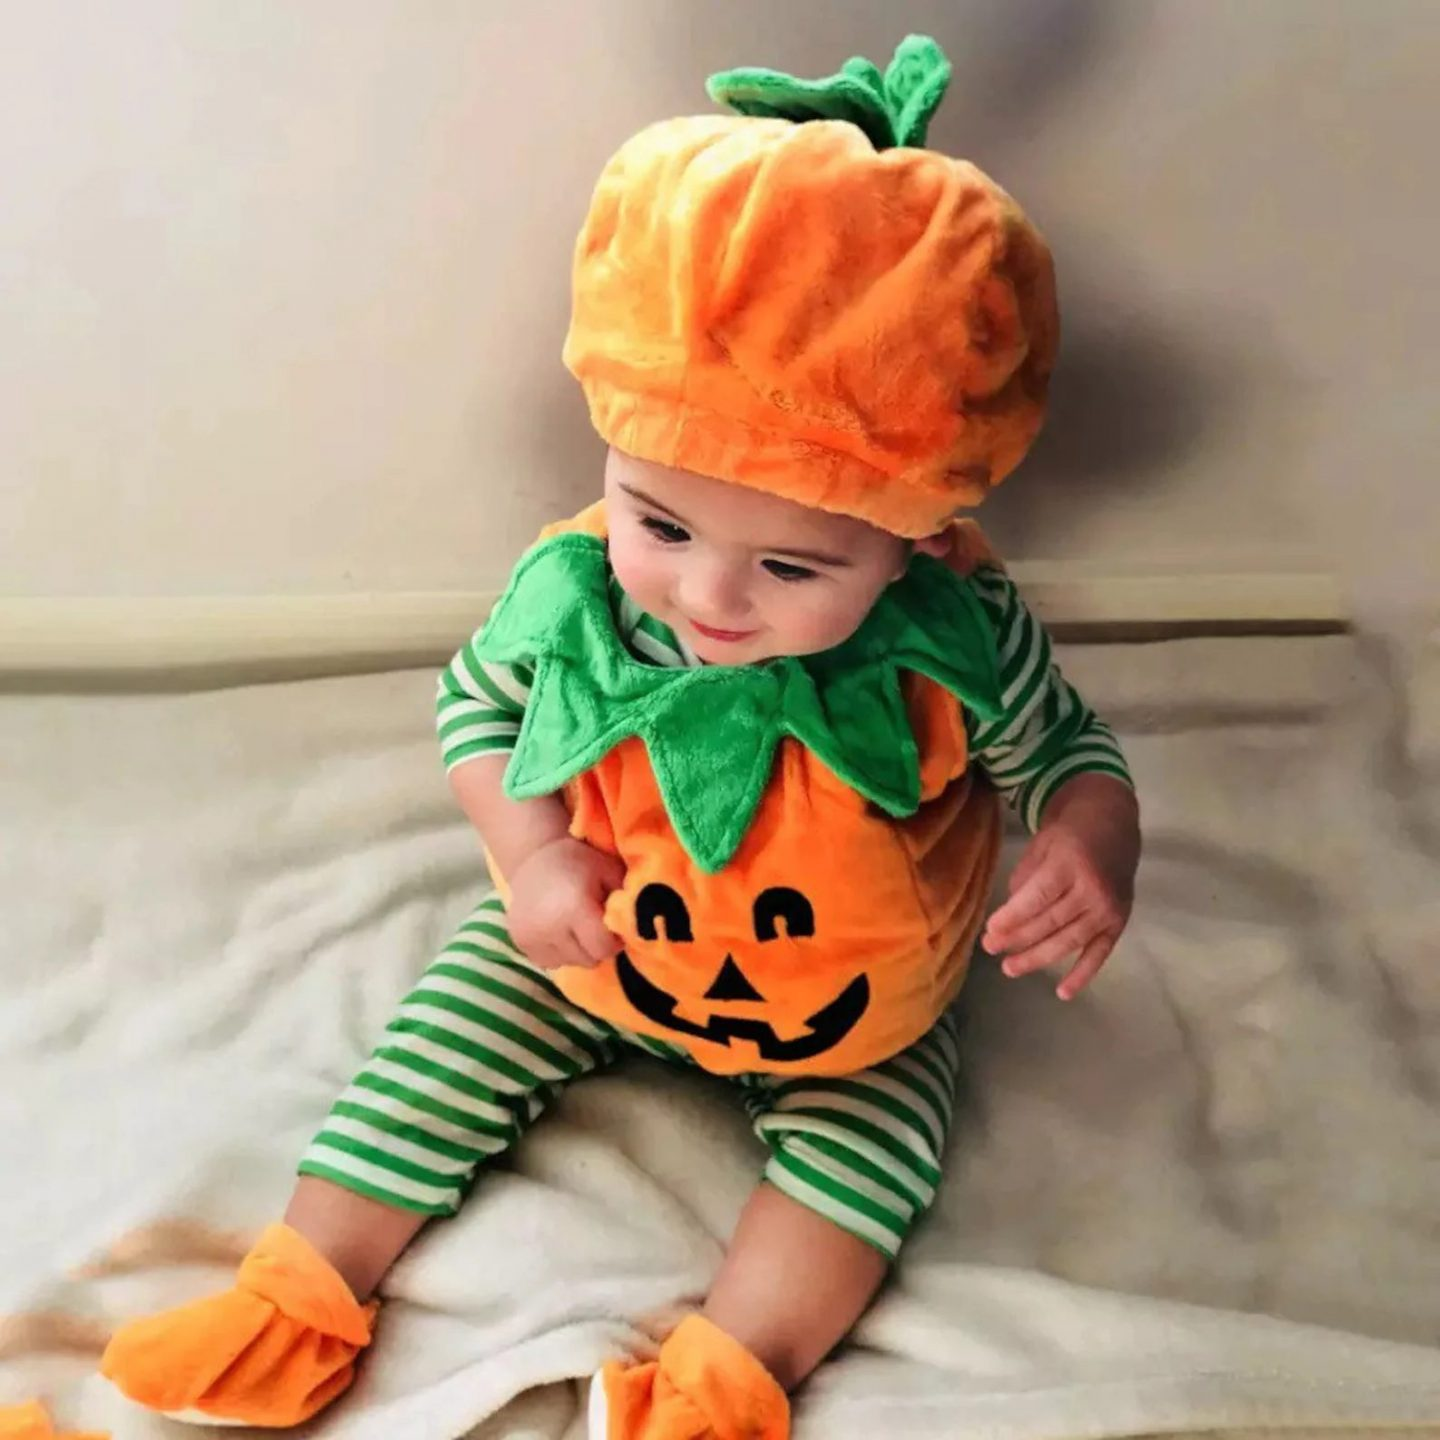 Cute pumpkin costume for infants and toddlers